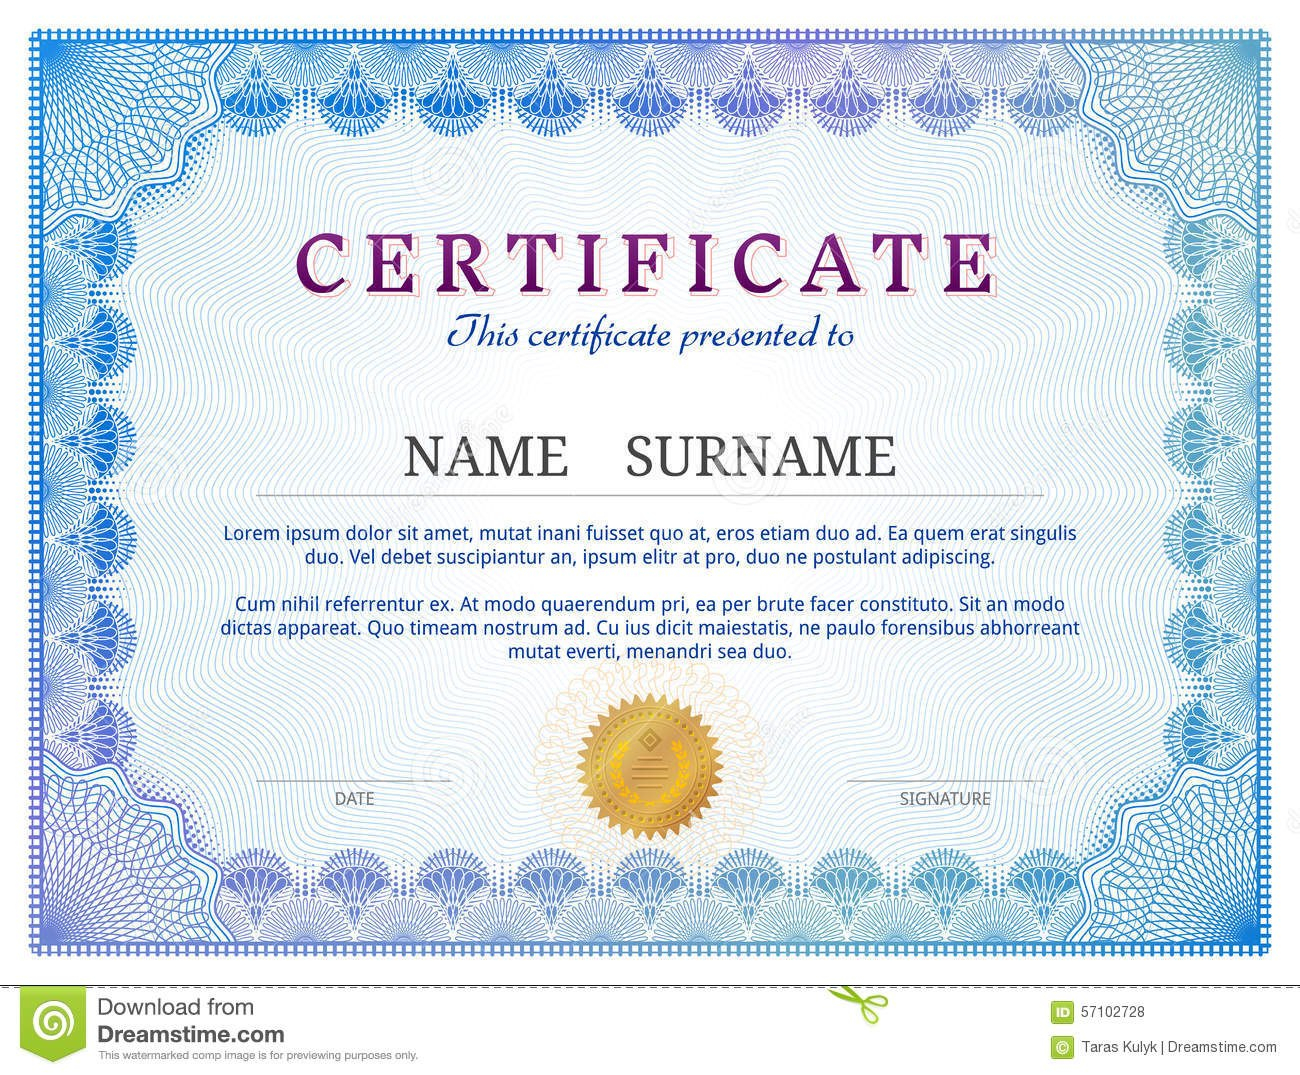 Certificate Template With Guilloche Elements Stock Vector Throughout Validation Certificate Template